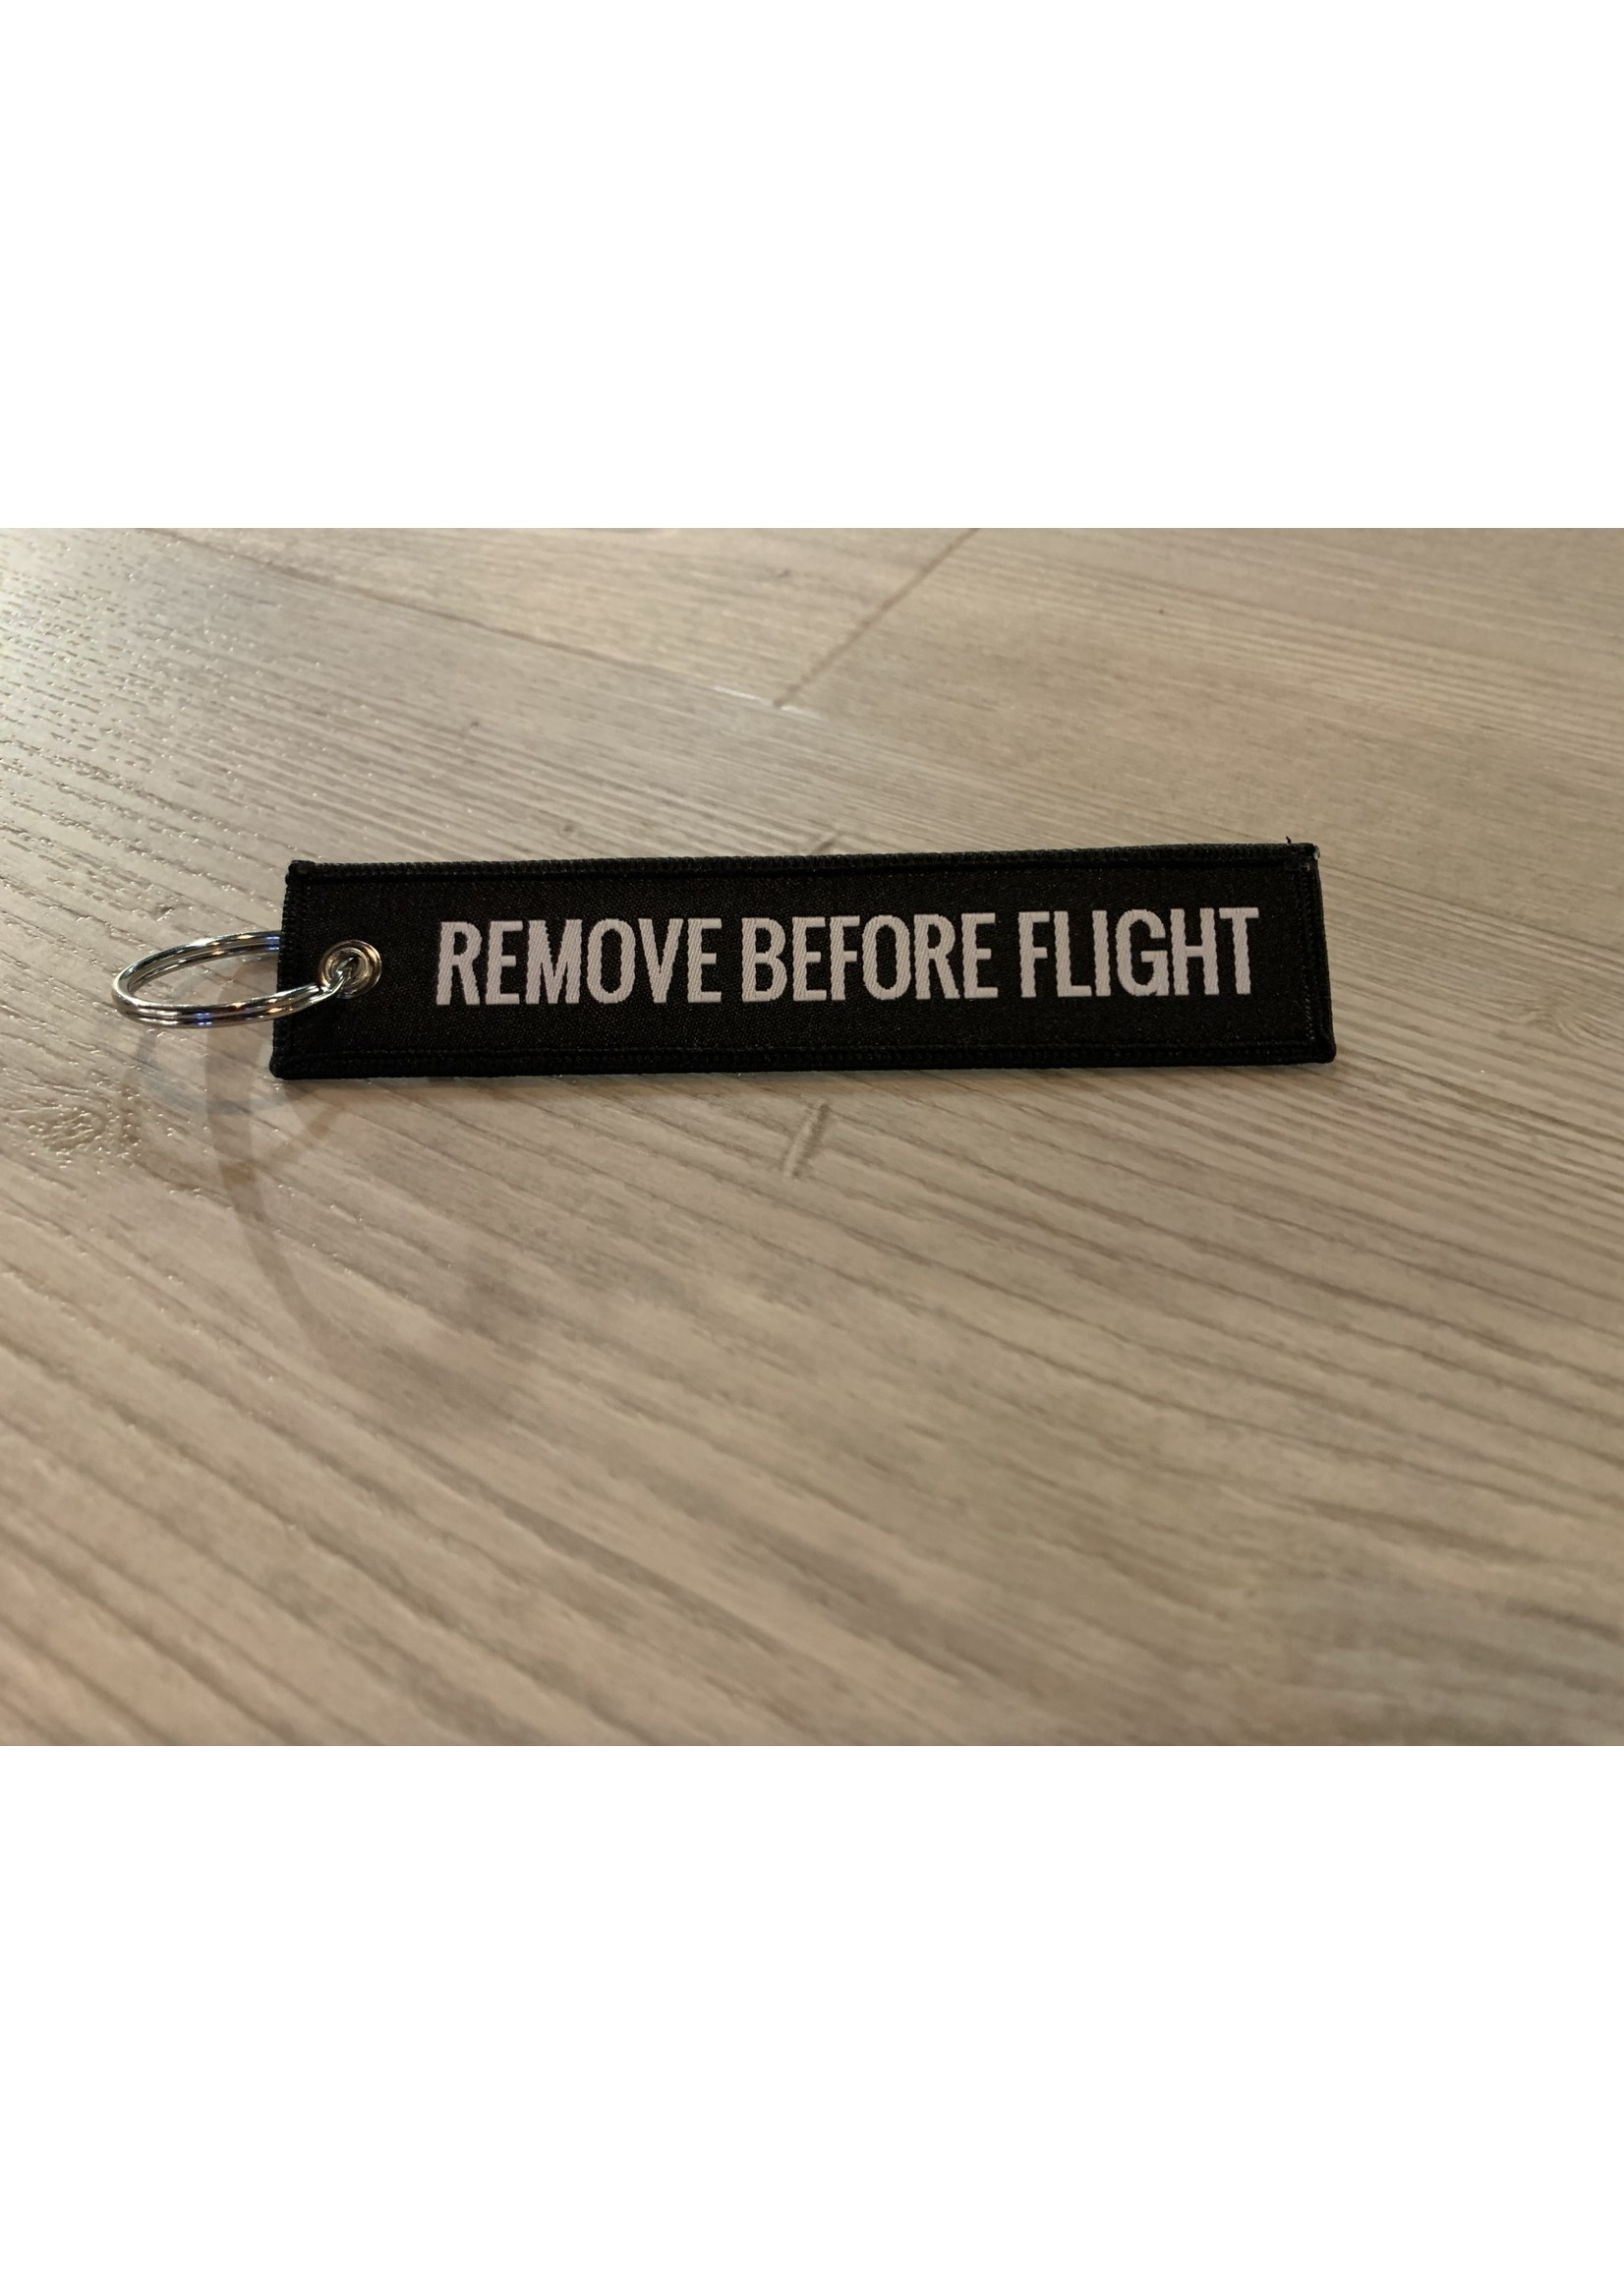 MotoPoint Sleutelhanger Remove before flight zwart